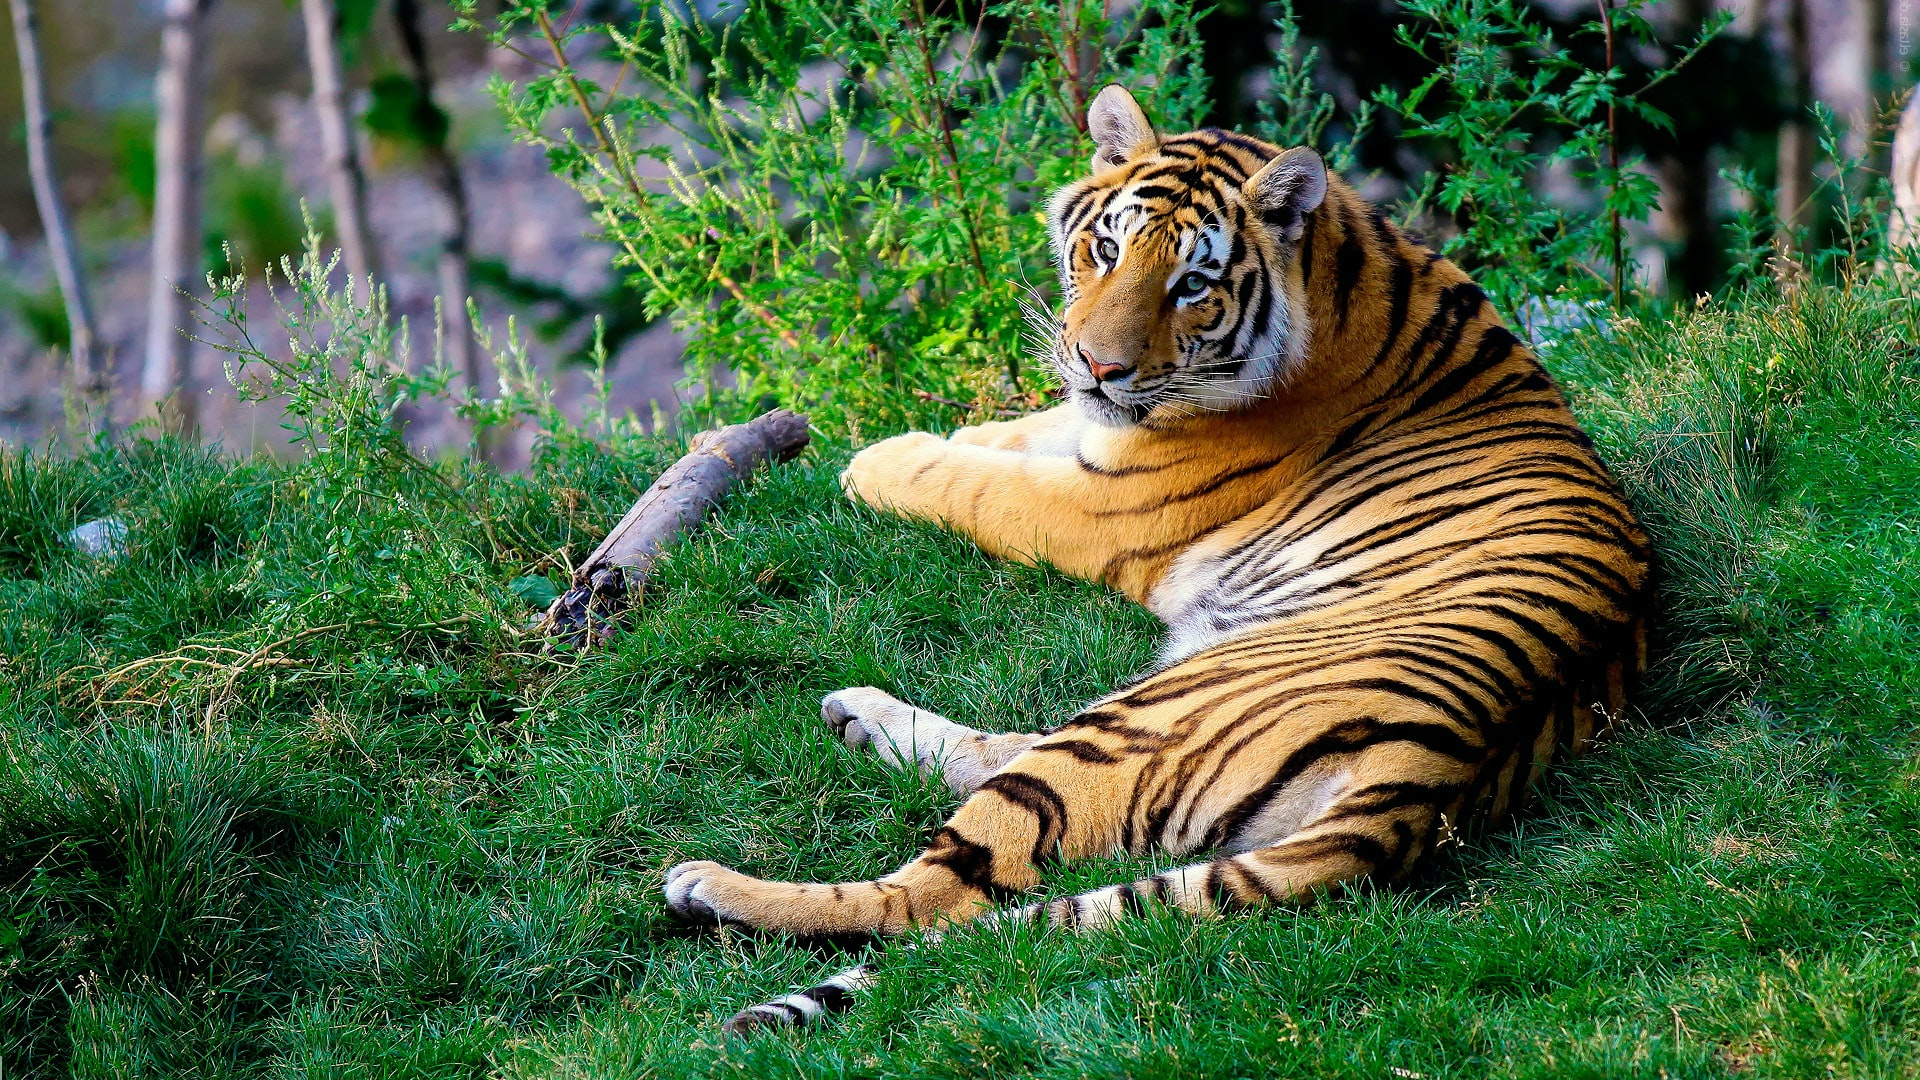 A tiger outstretched on green grass raises its head to look at the camera